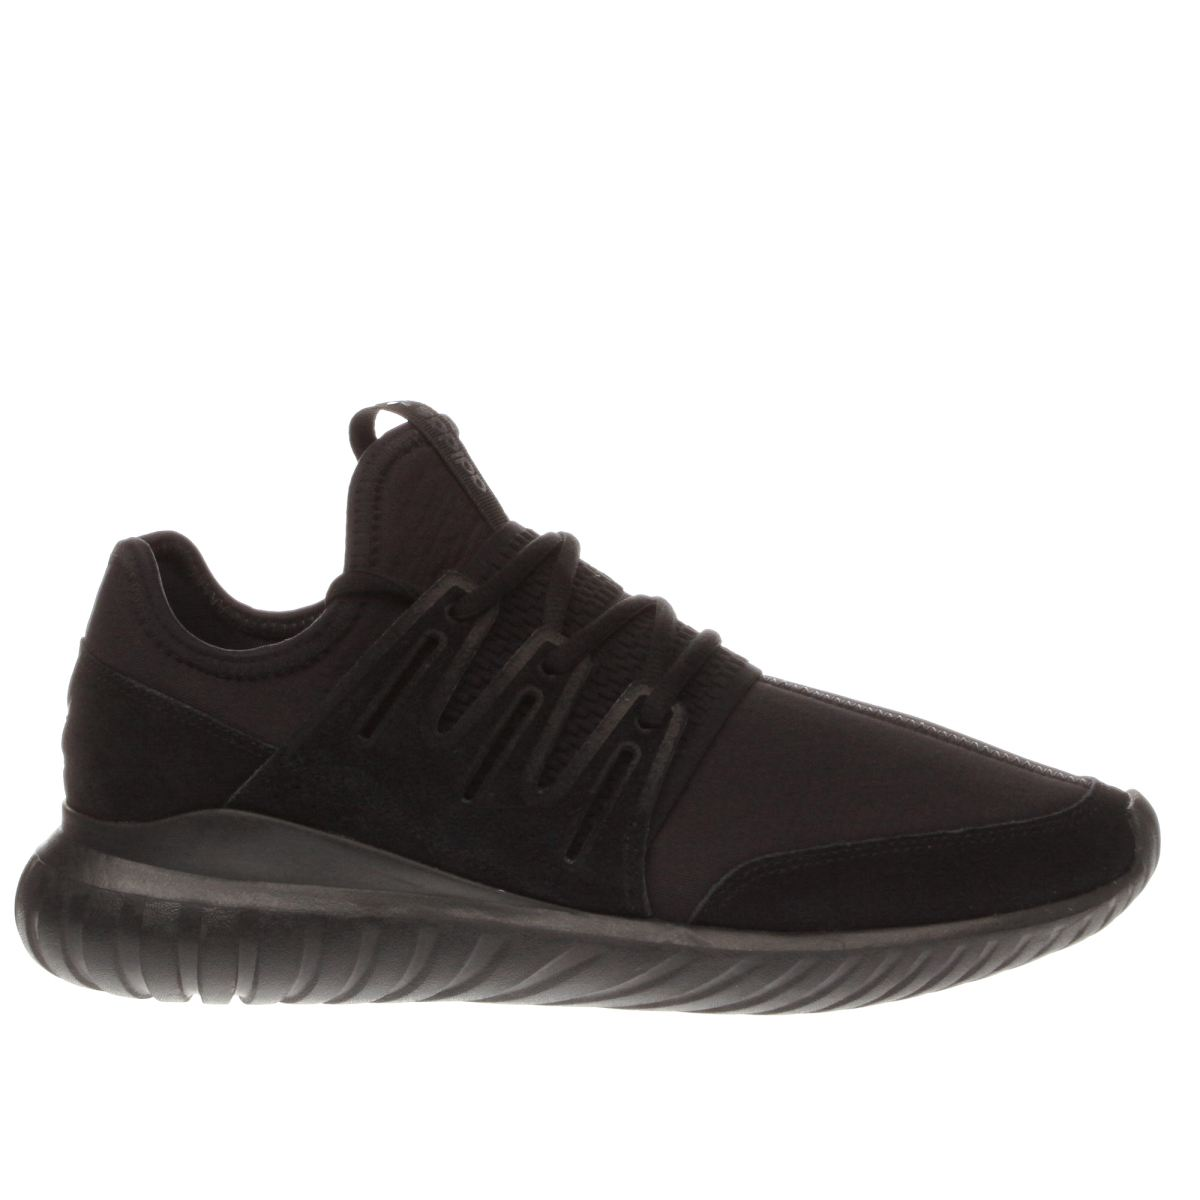 Adidas Tubular Kids Black